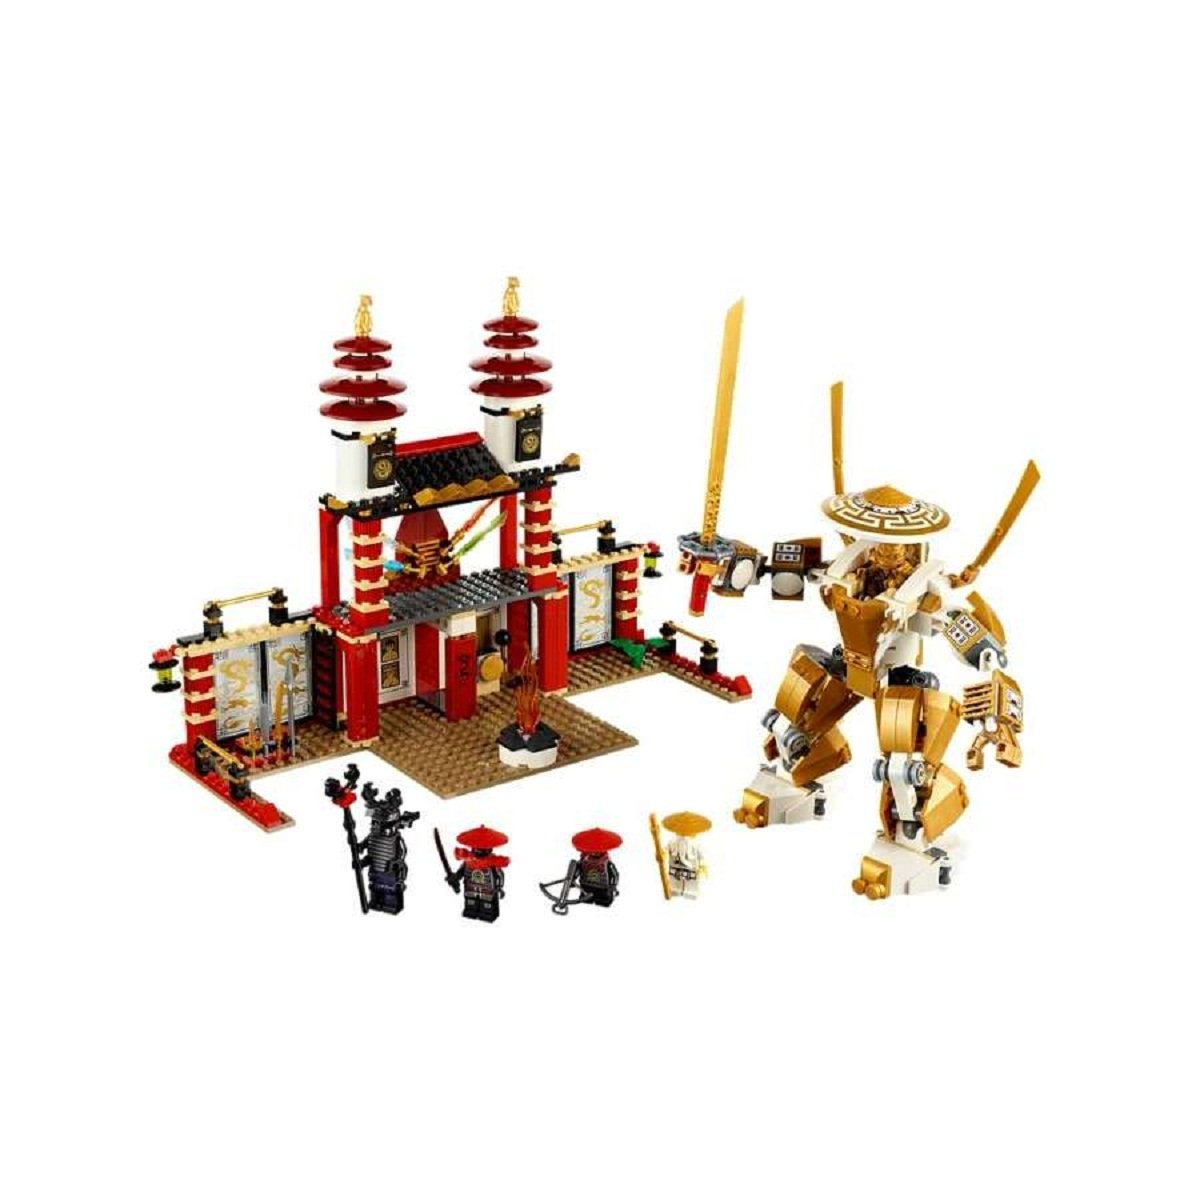 Amazon.com: LEGO NINJAGO Golden Ninja Temple of Light The ...